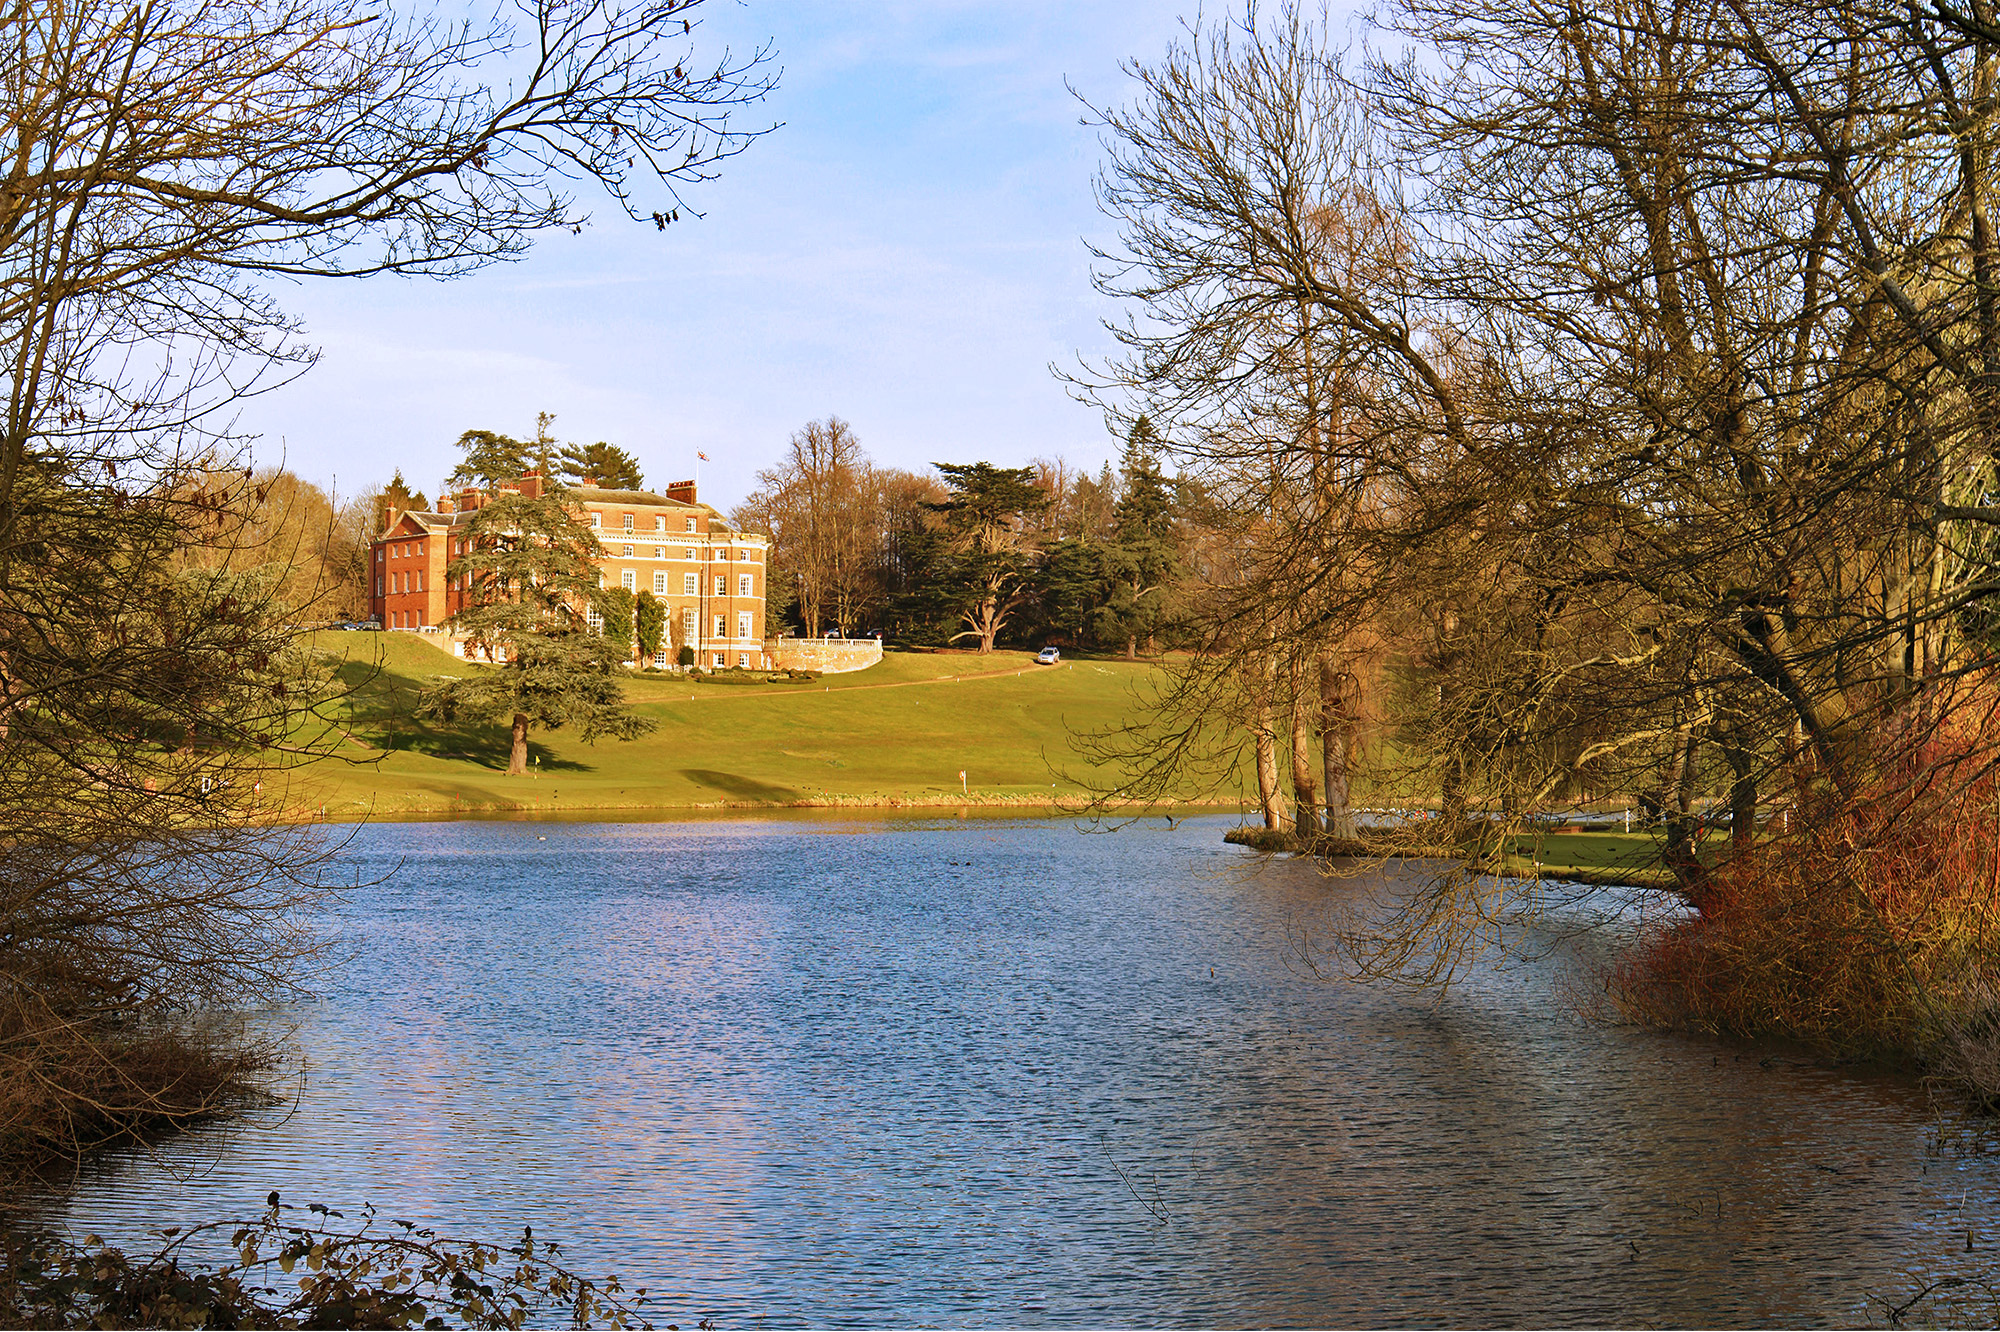 Brocket Hall Grounds